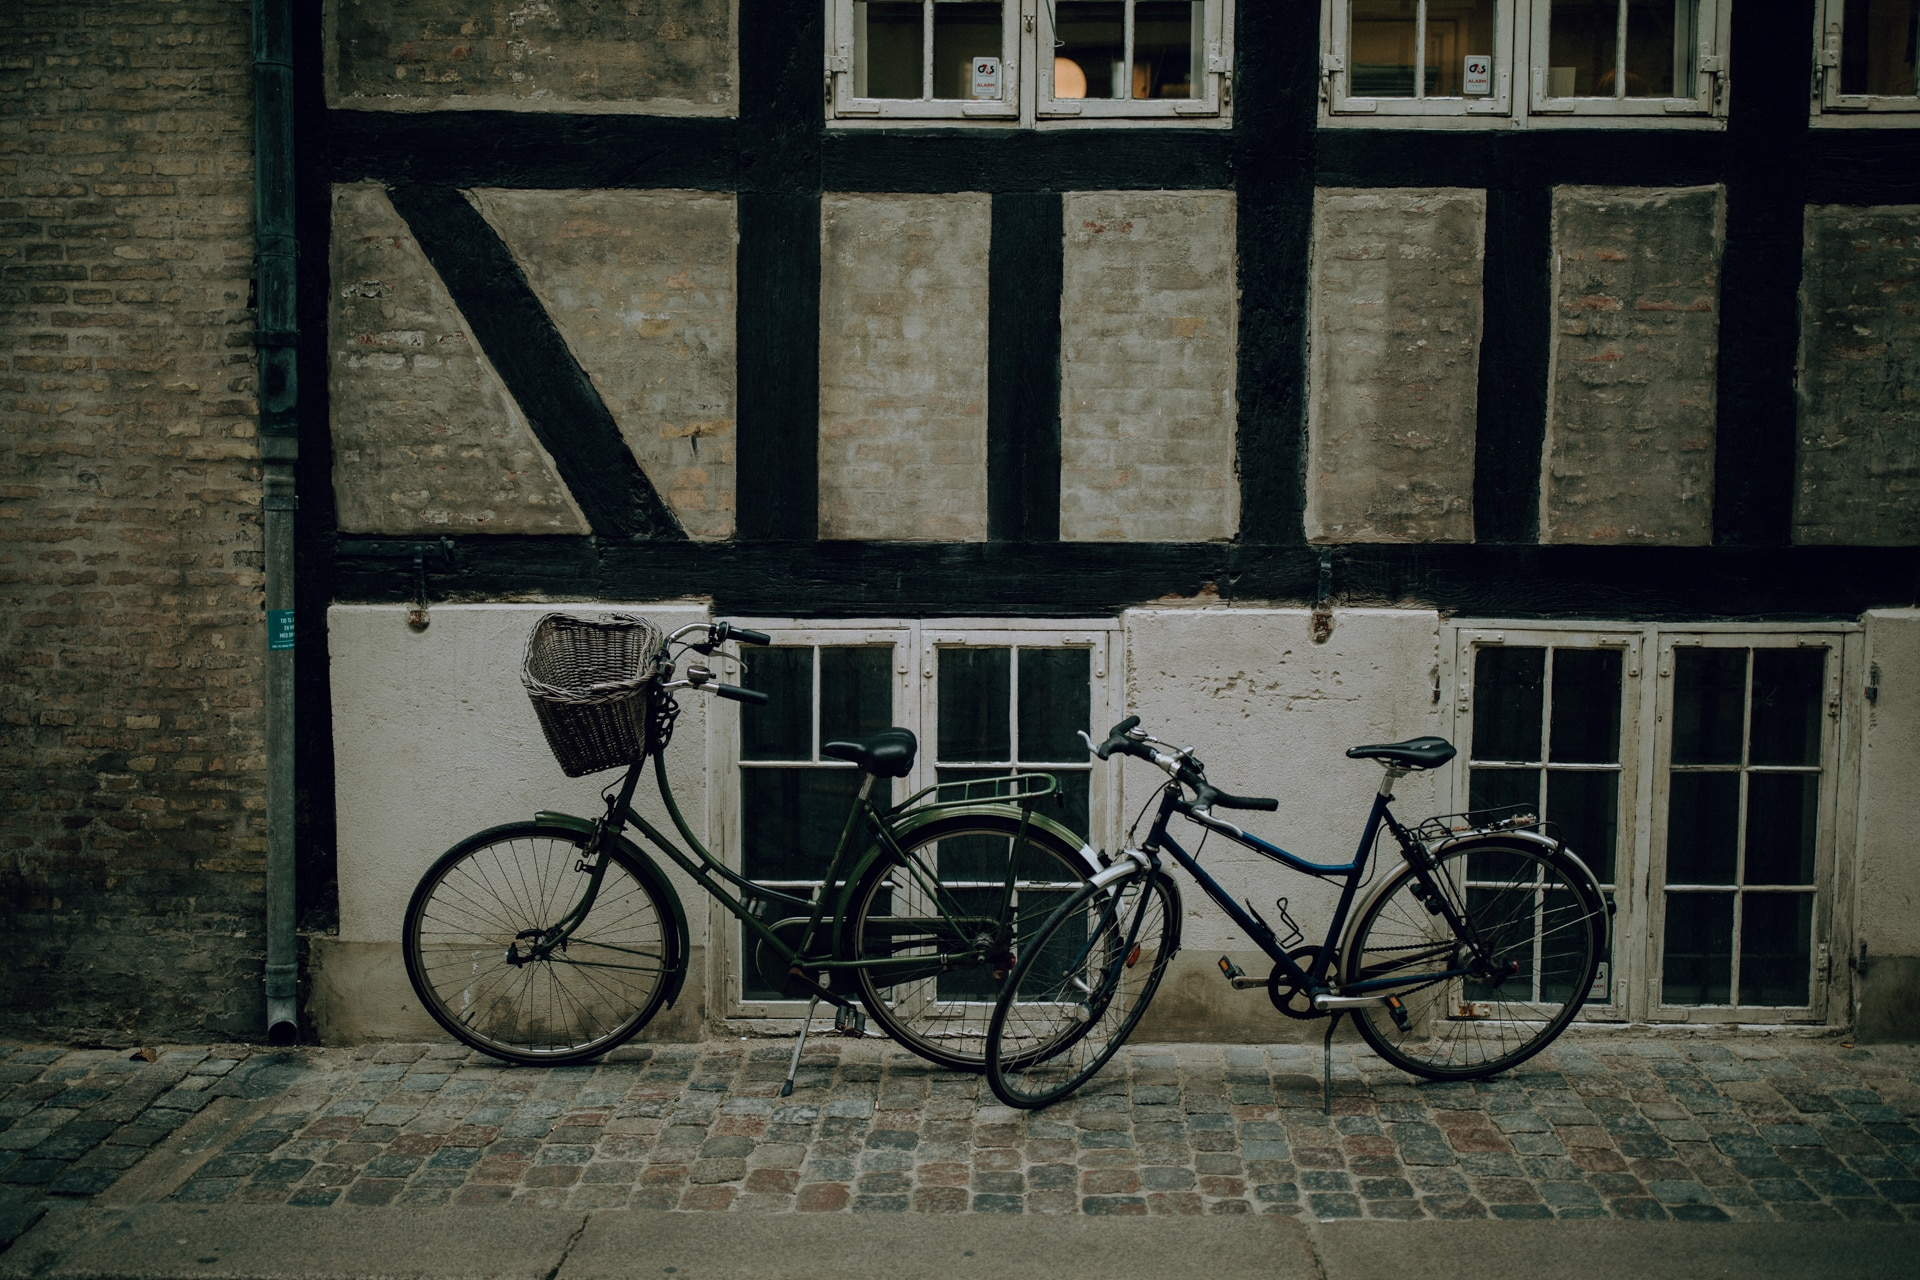 This Copenhagen Wedding picture shows two bikes standing in front of an old building.